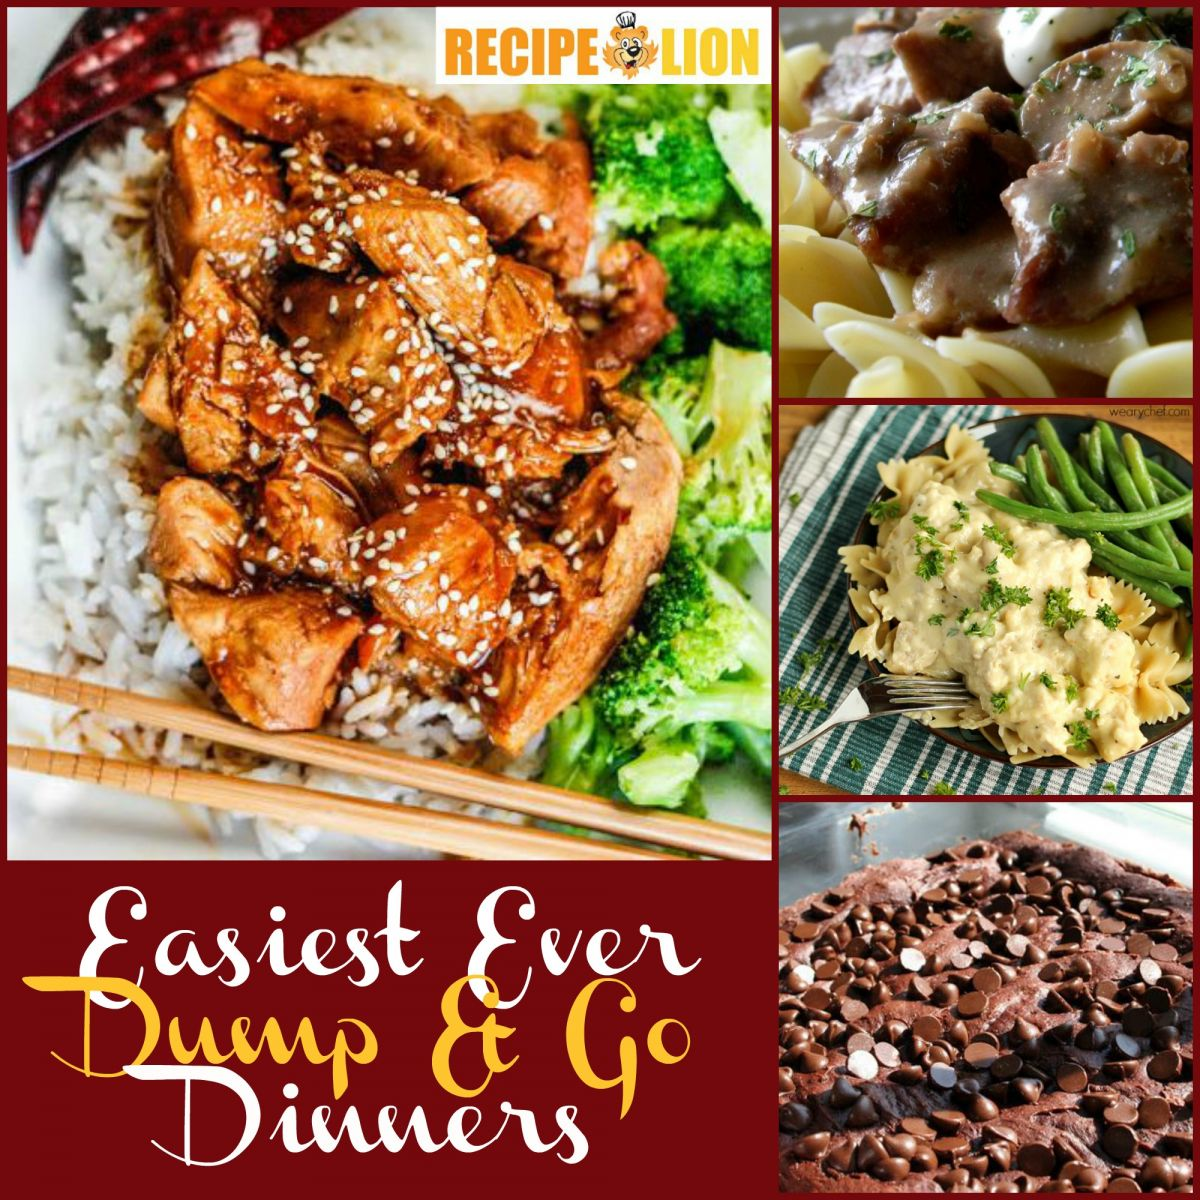 Easy Dinner Recipes: Dump and Go Dinners